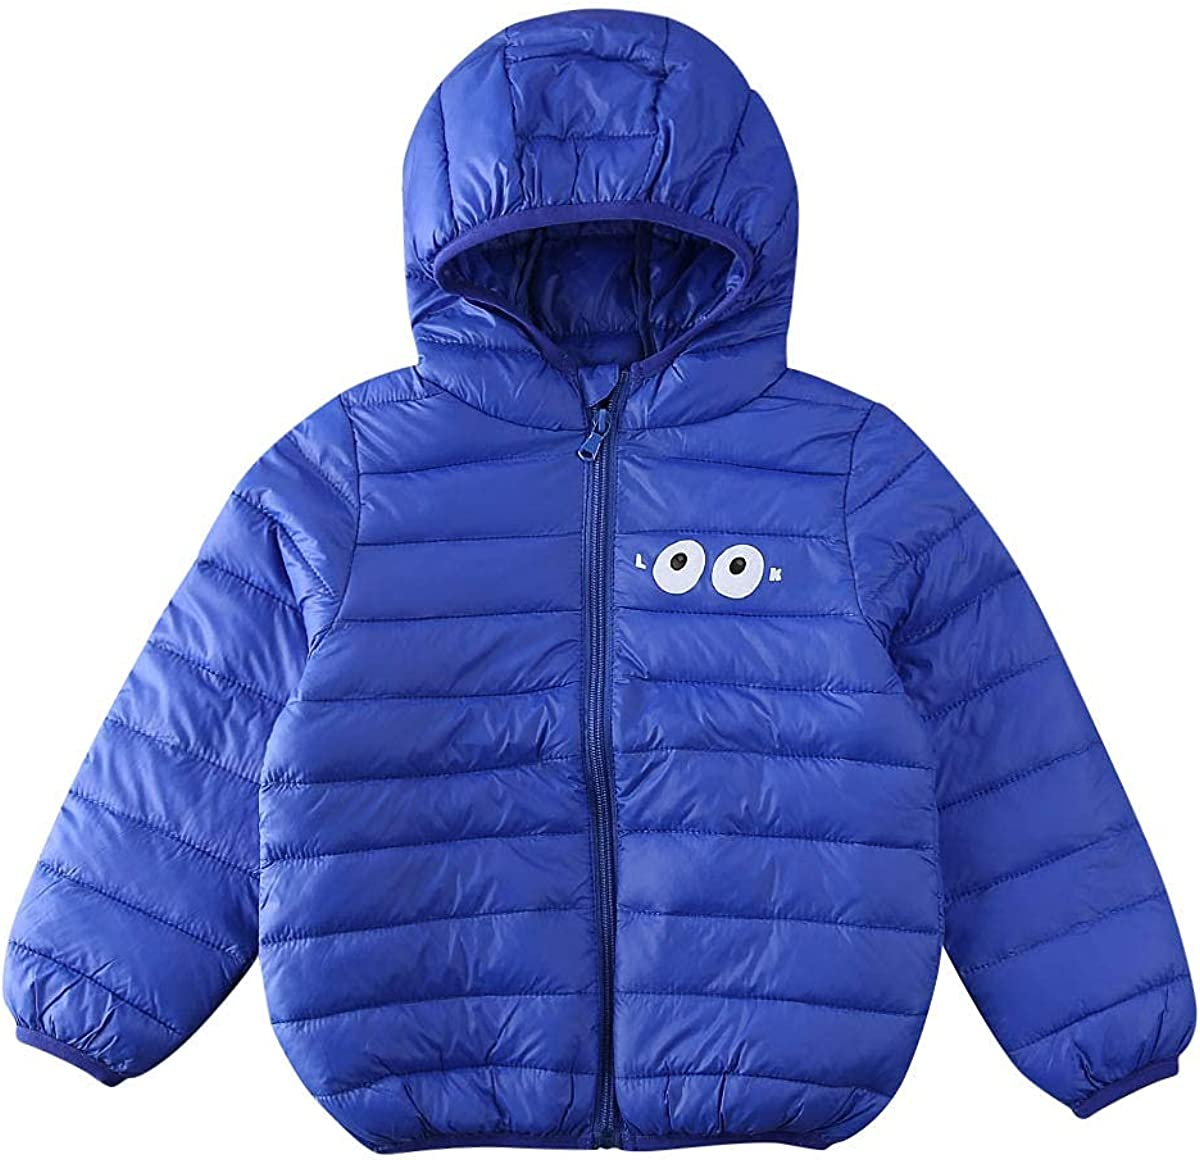 Tababobyto Kids Boy Mail order cheap Max 83% OFF Girl Hooded Coat Print L Solid Cartoon Color